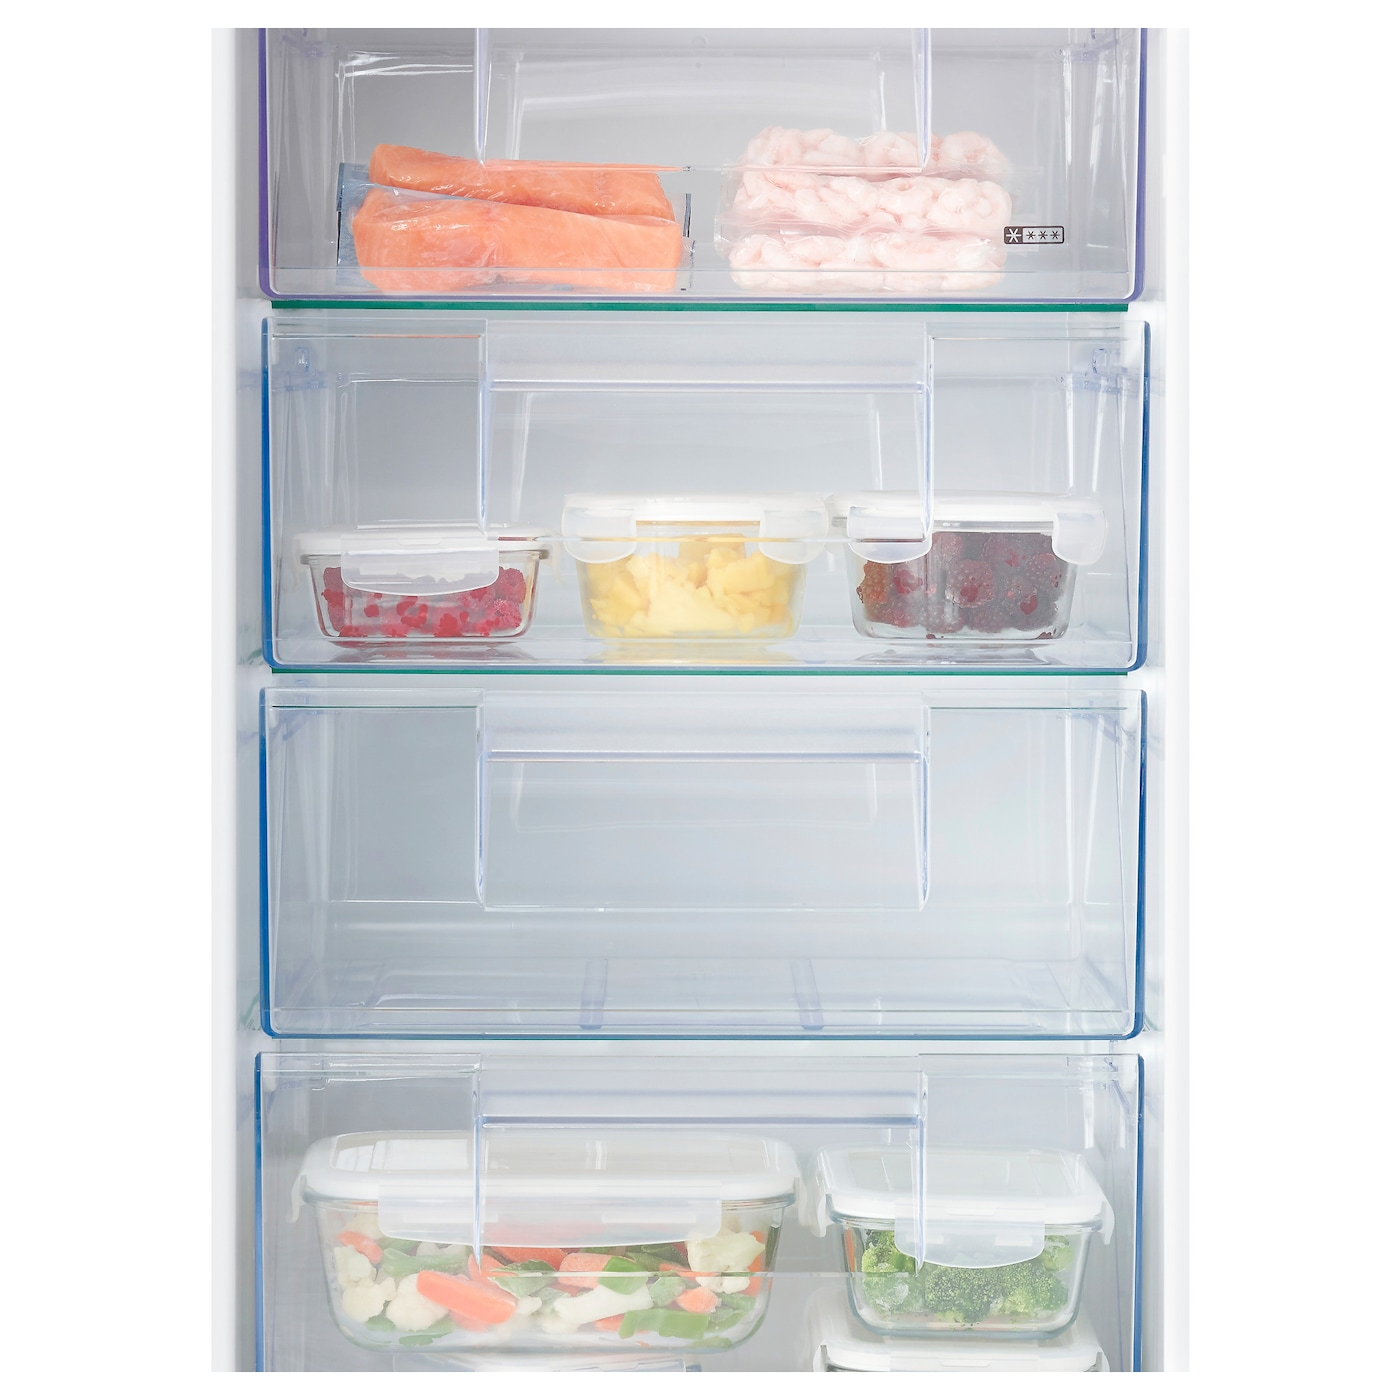 IKEA DJUPFRYSA integrated freezer A++ Smooth inner walls and 4 removable drawers for easy cleaning.